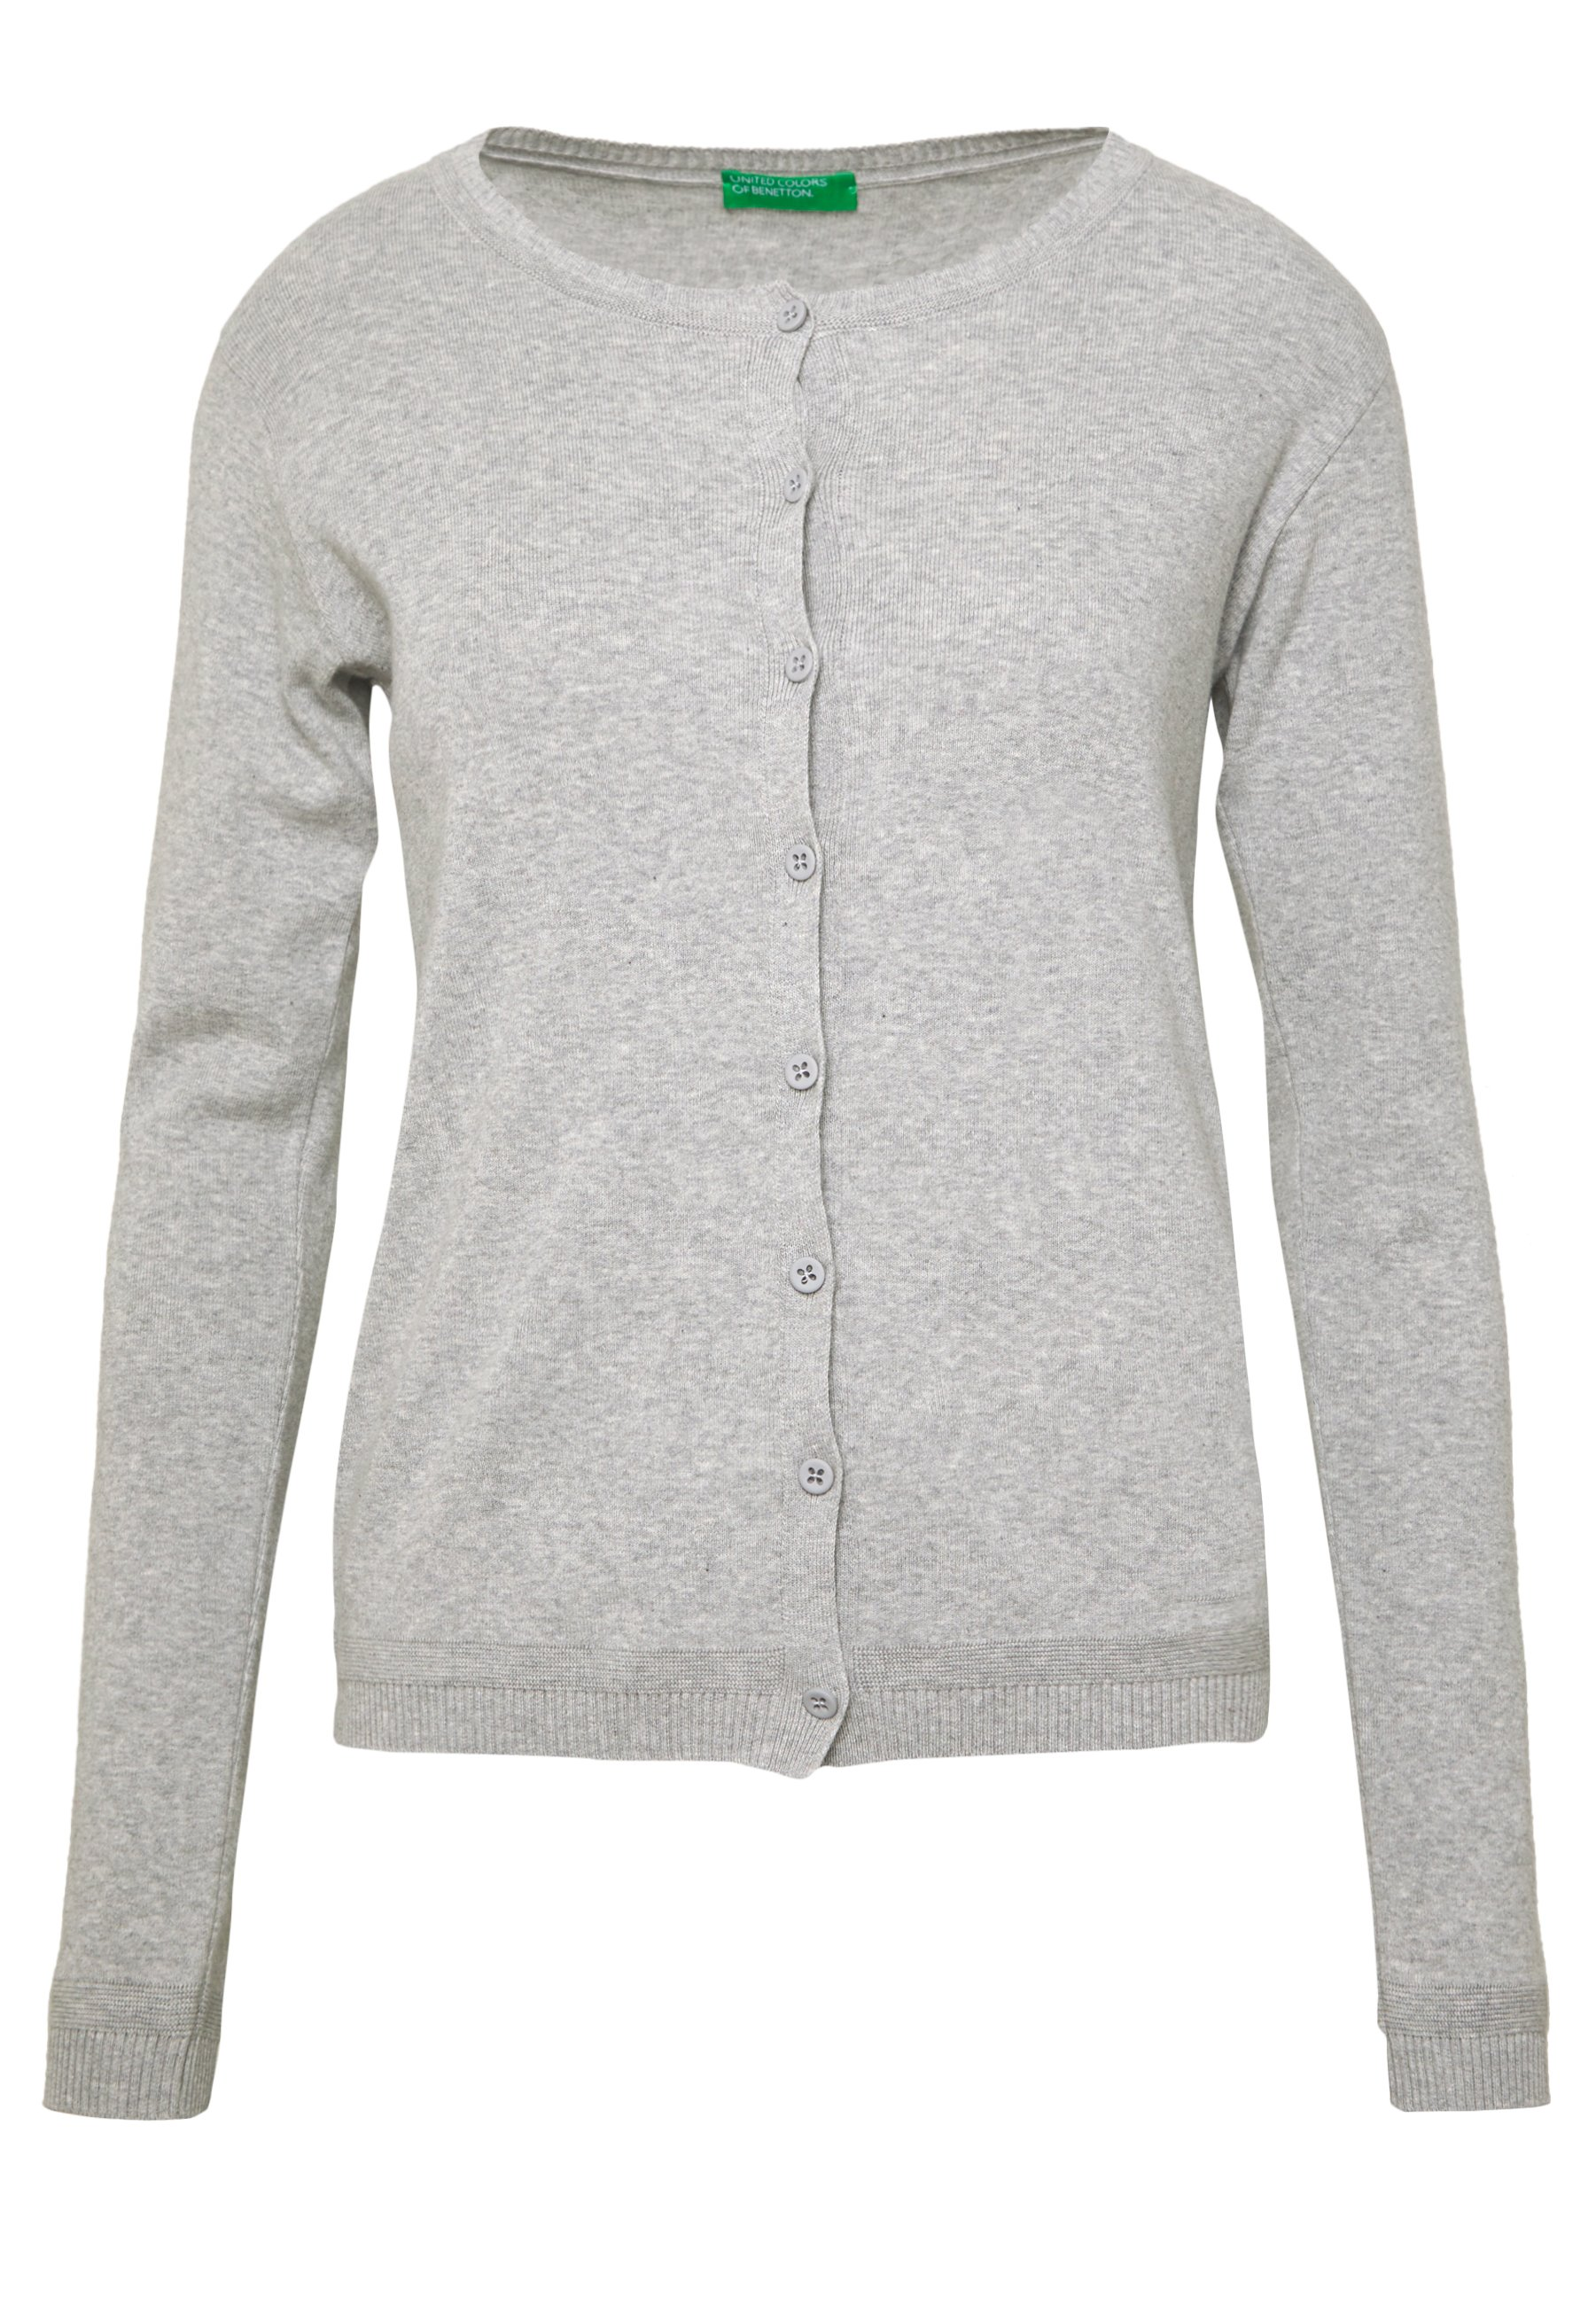 Benetton Kofta - Grey